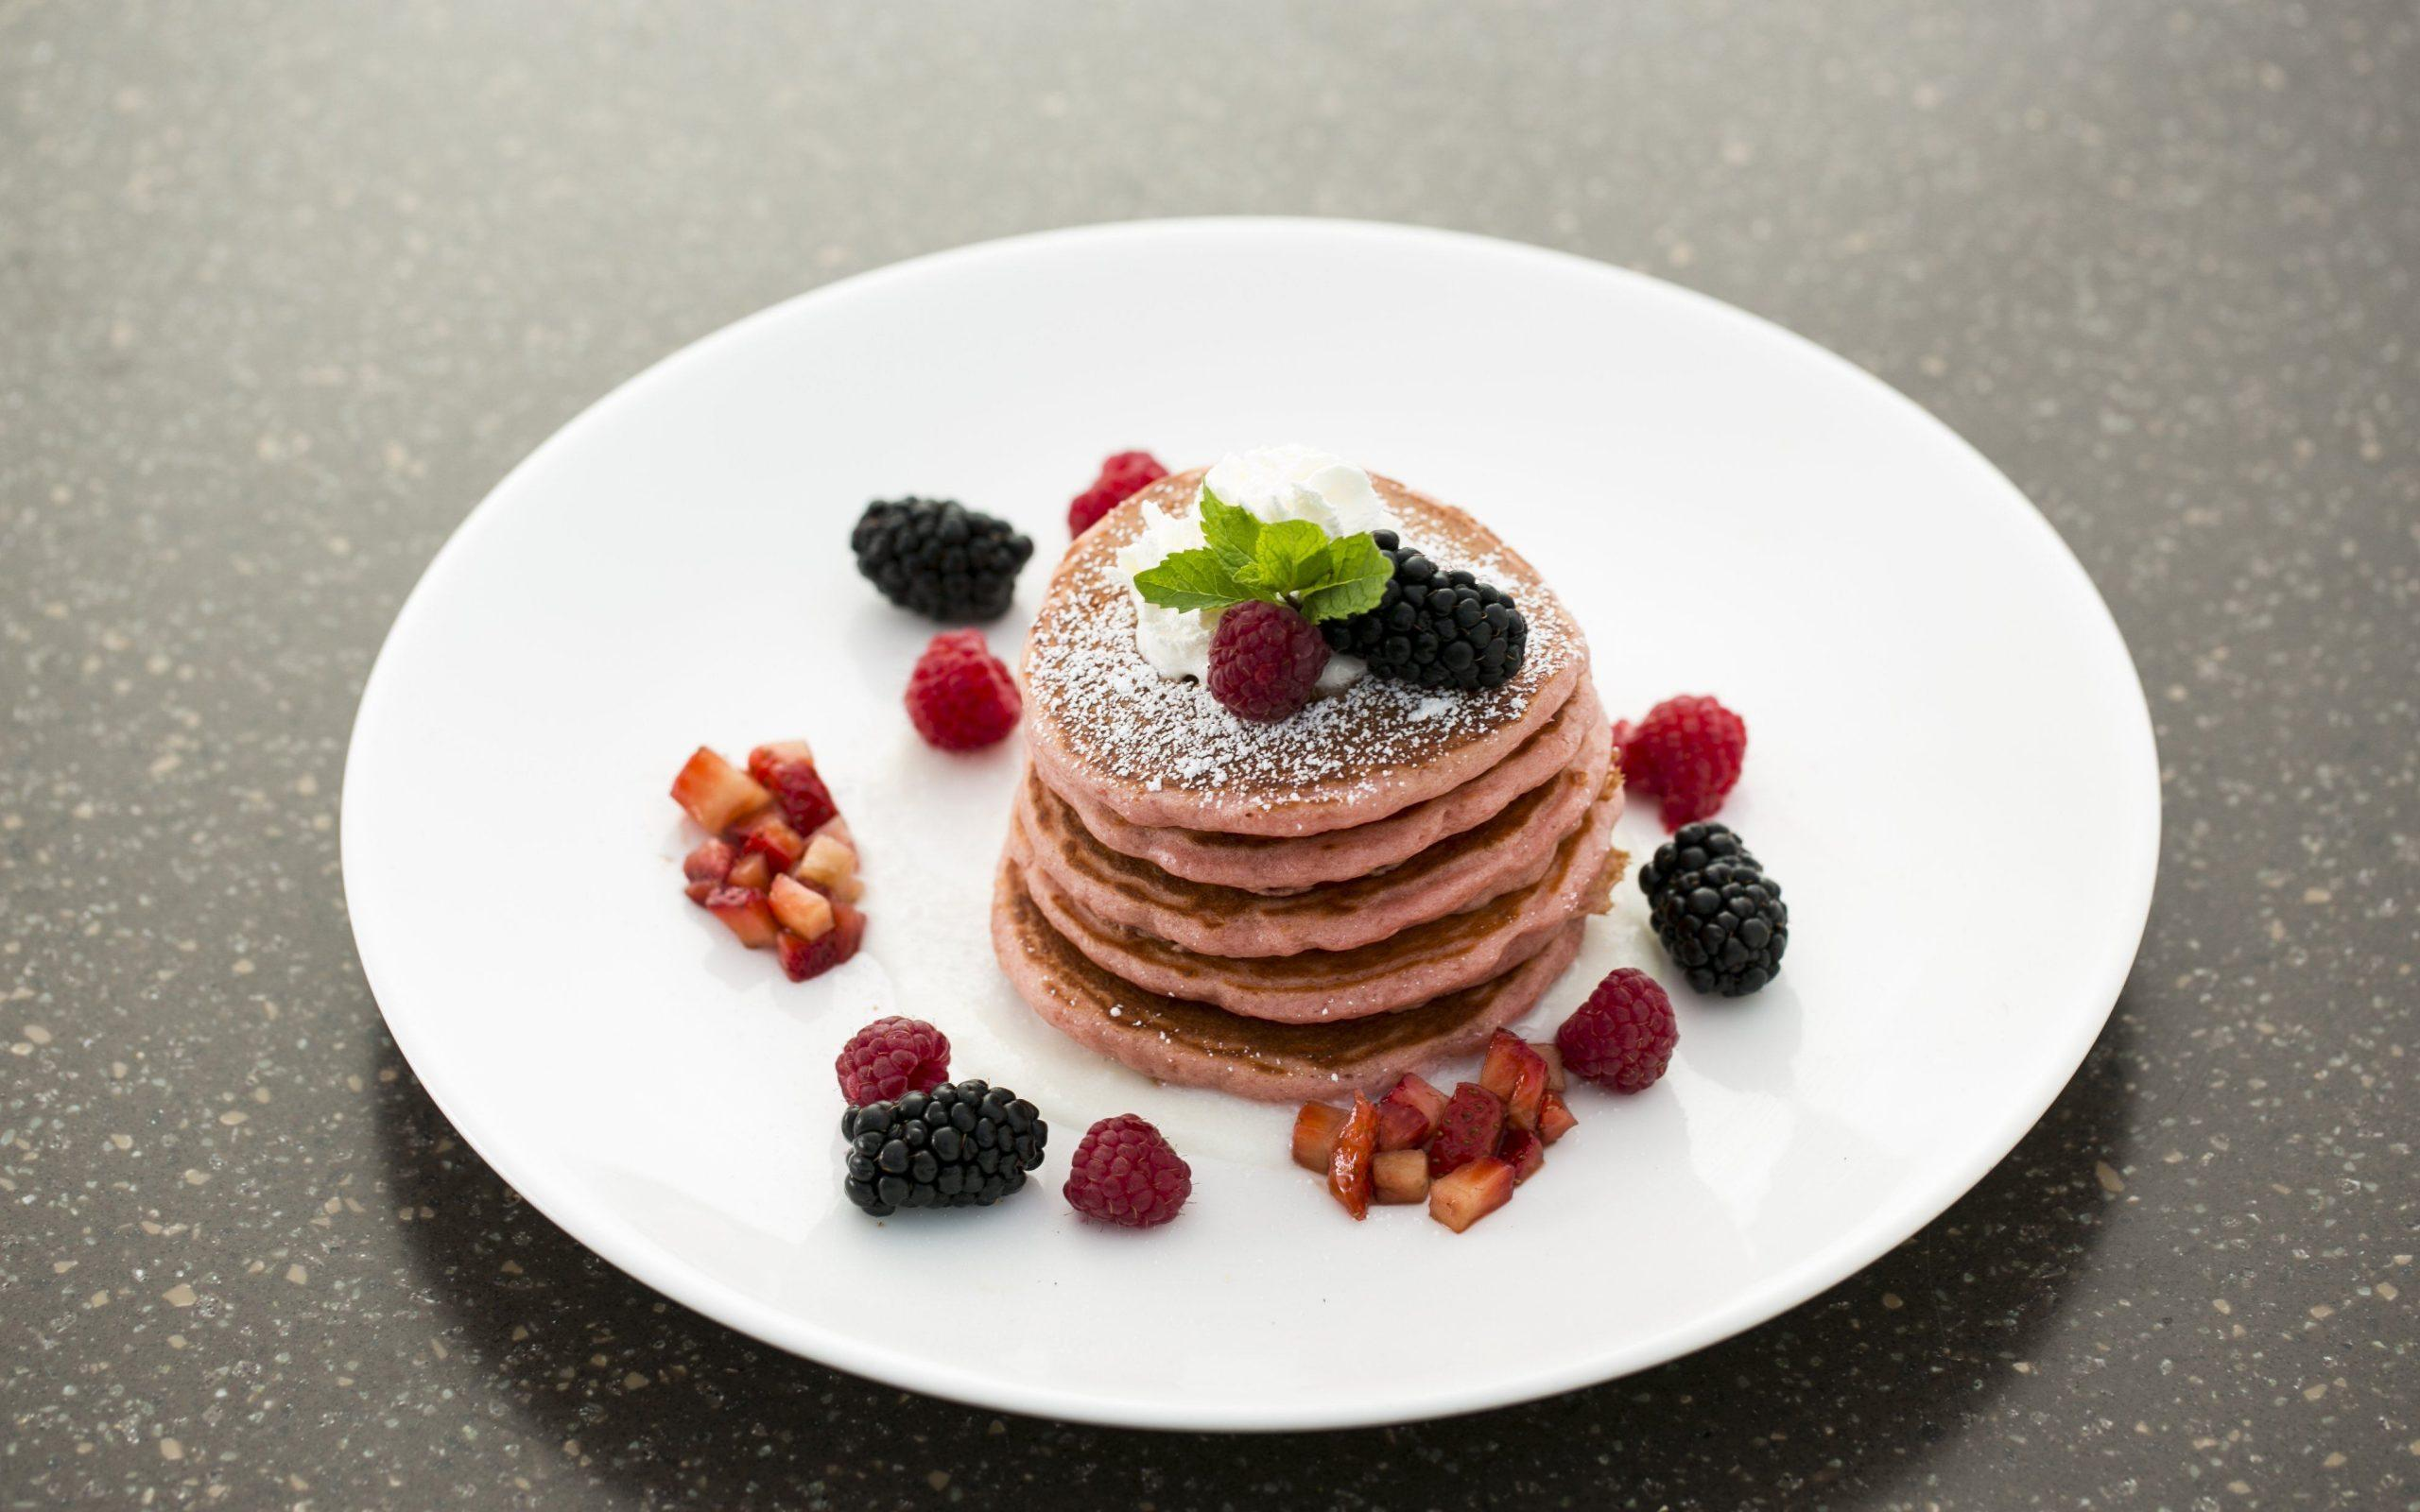 pink pancakes and berries on a plate